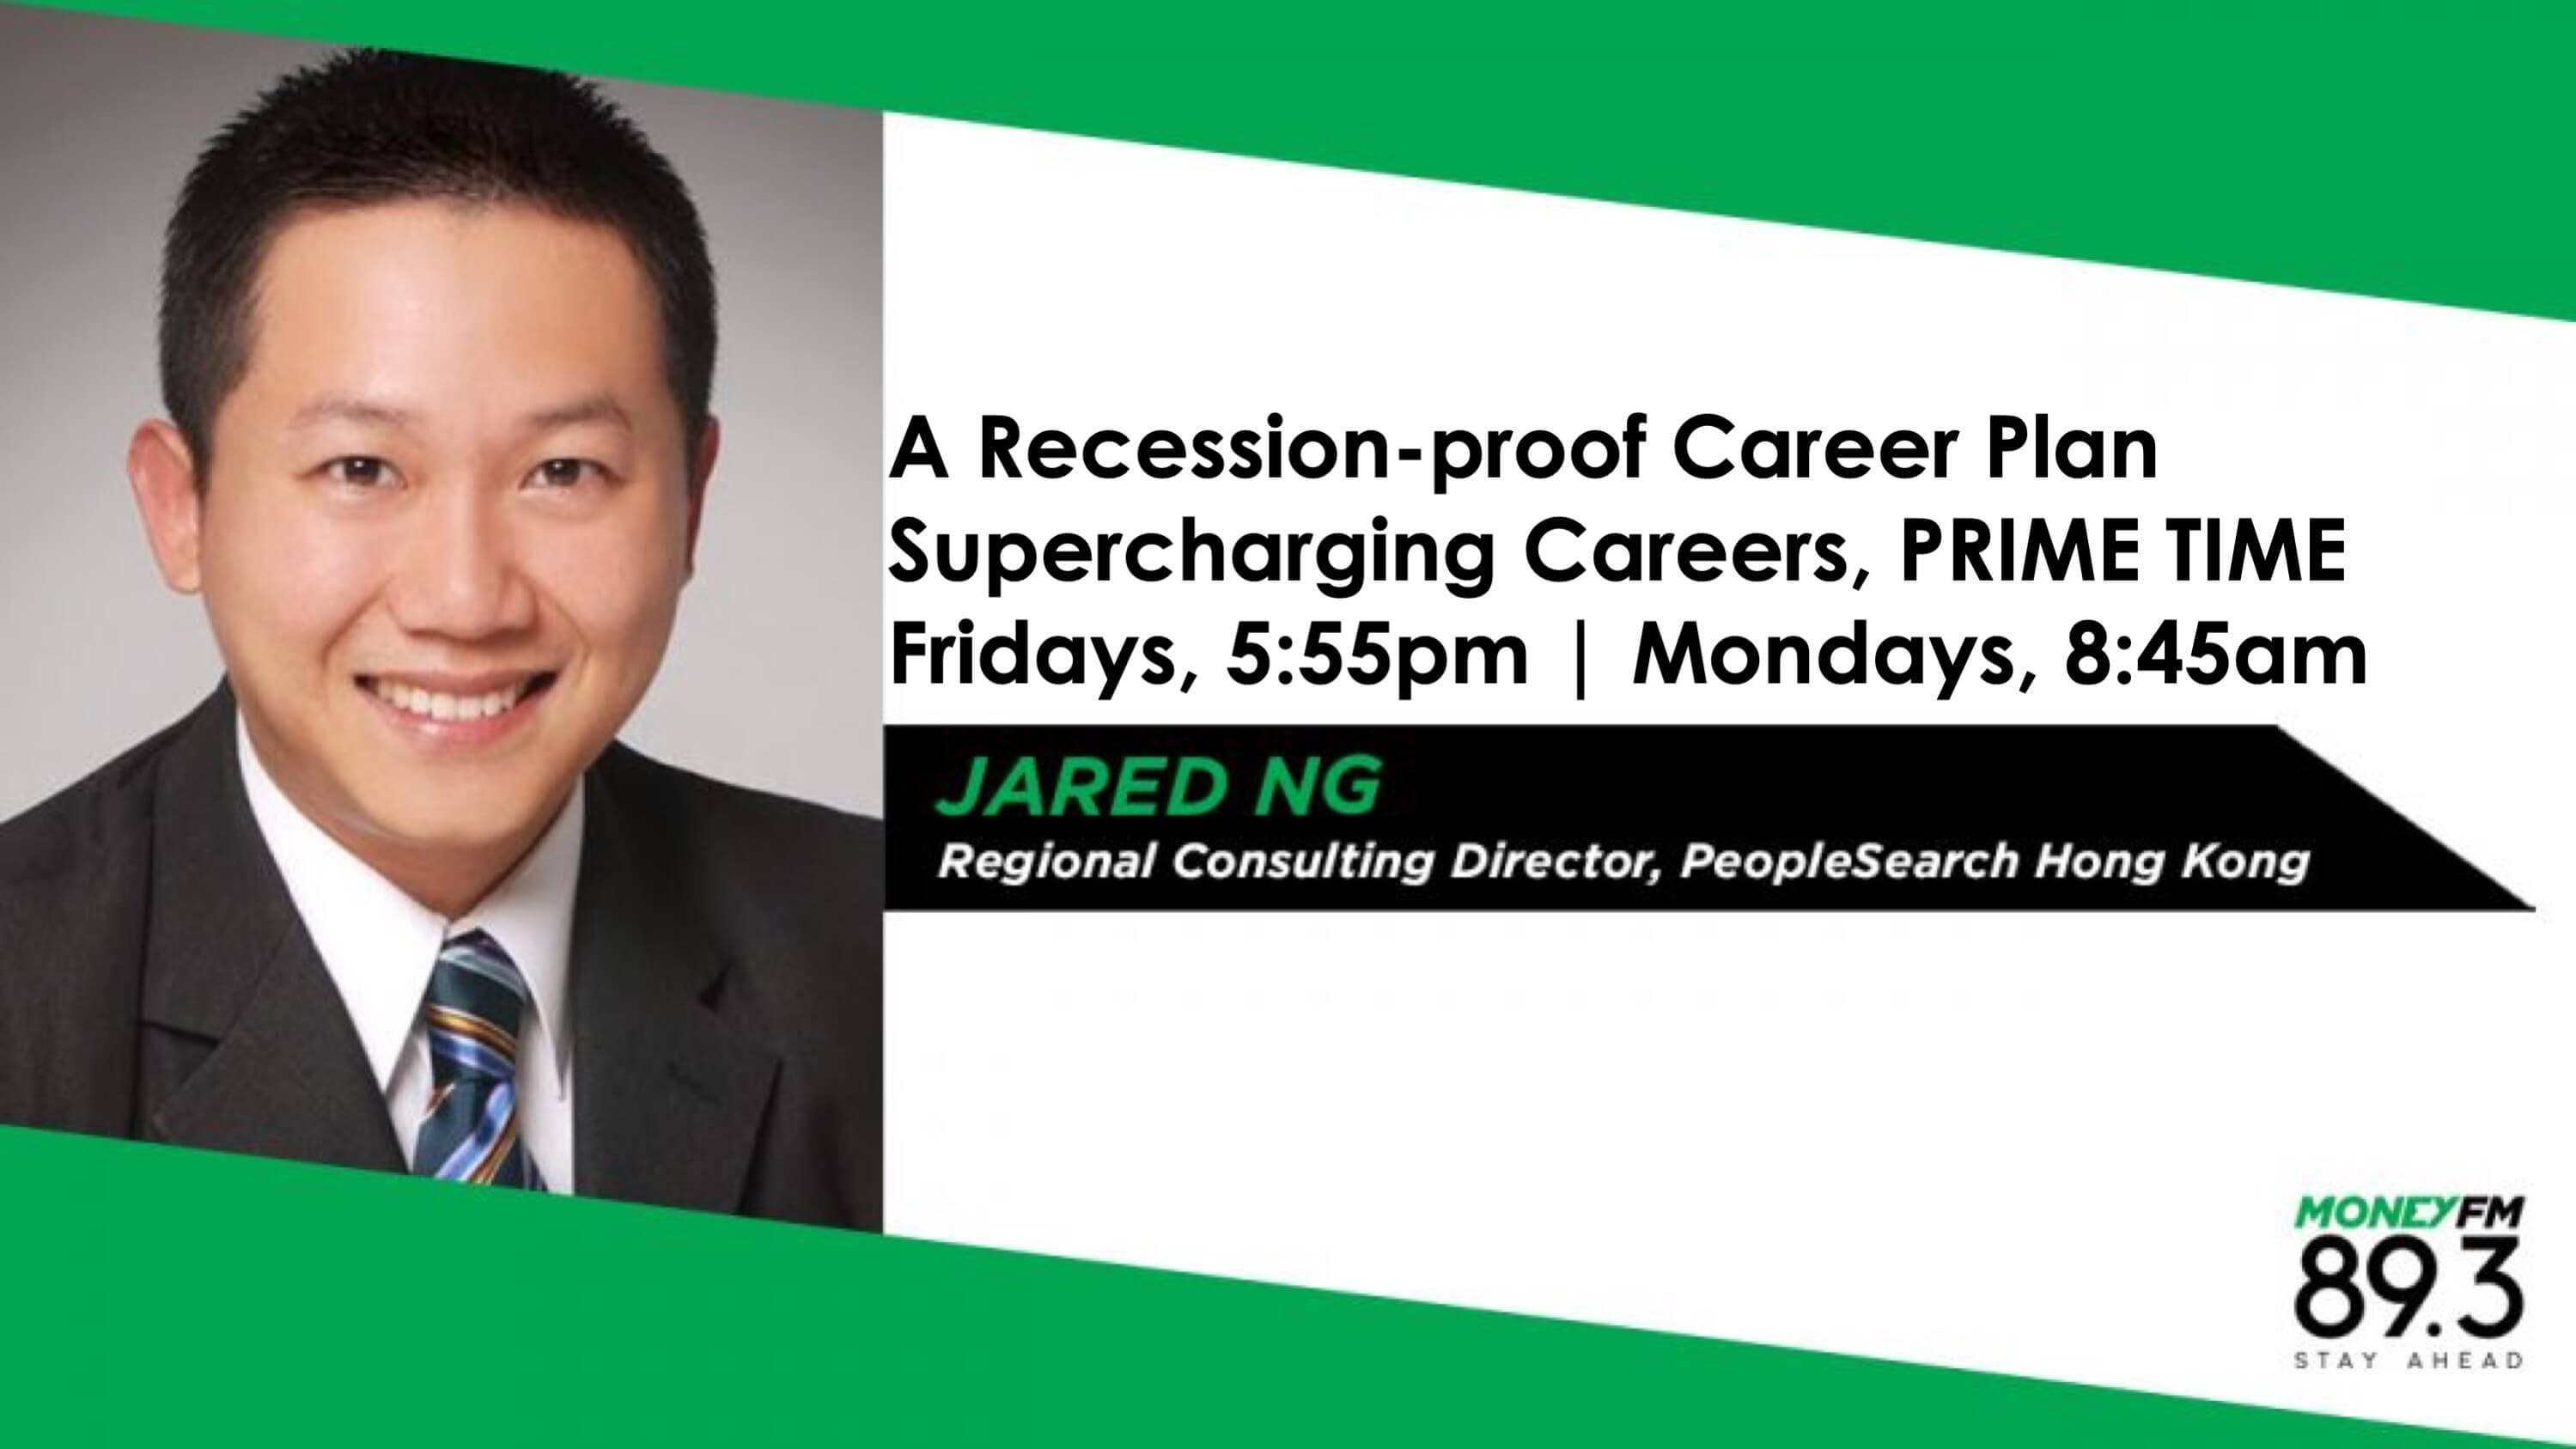 Asian man in dark suit and striped tie on radio station, MONEY FM 89.3's Supercharging Careers banner